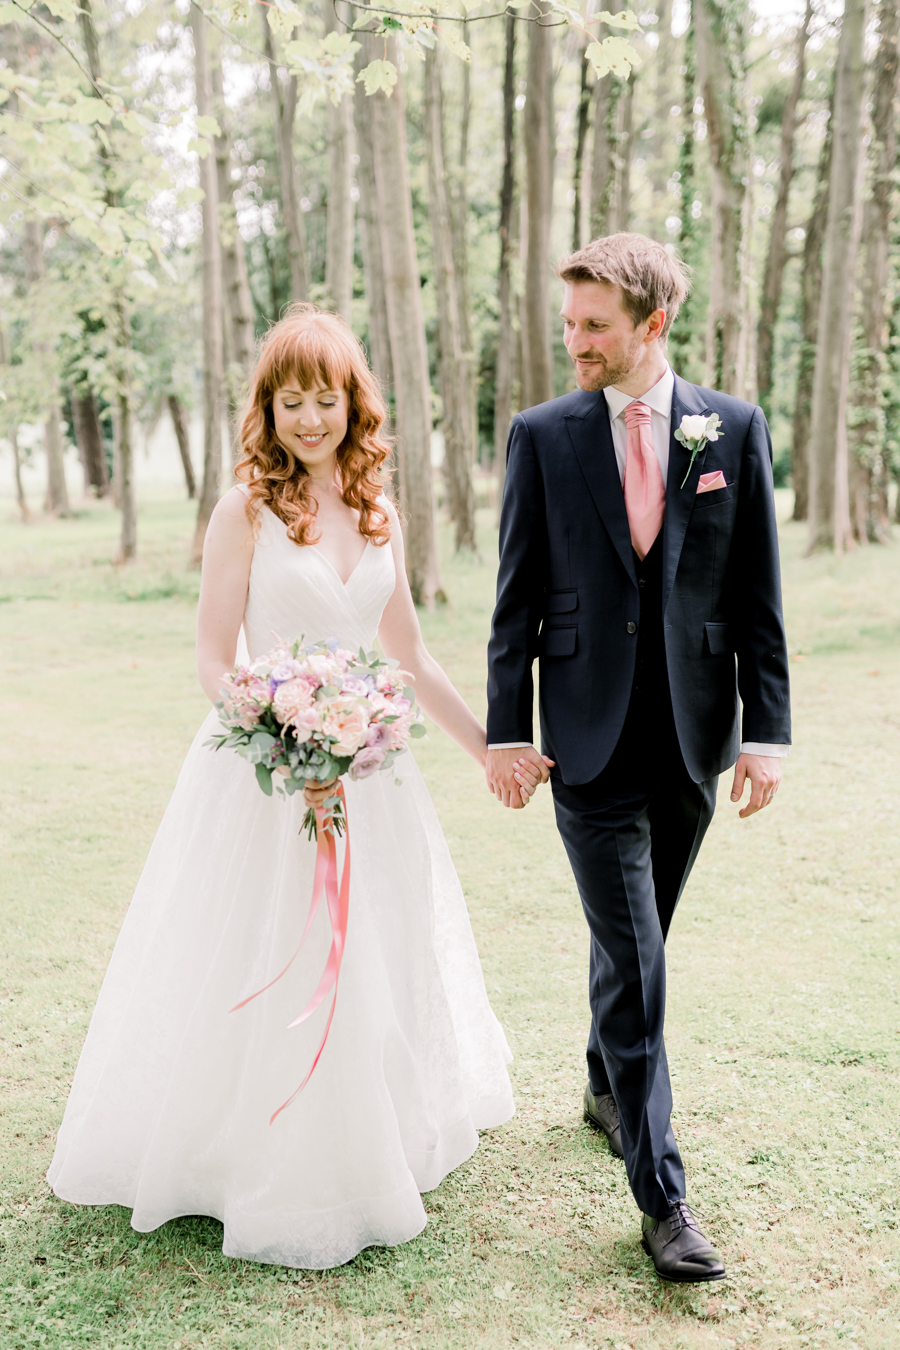 Fine art wedding photography blog from Brinsop Court UK, images by Joanna Briggs Photography (18)